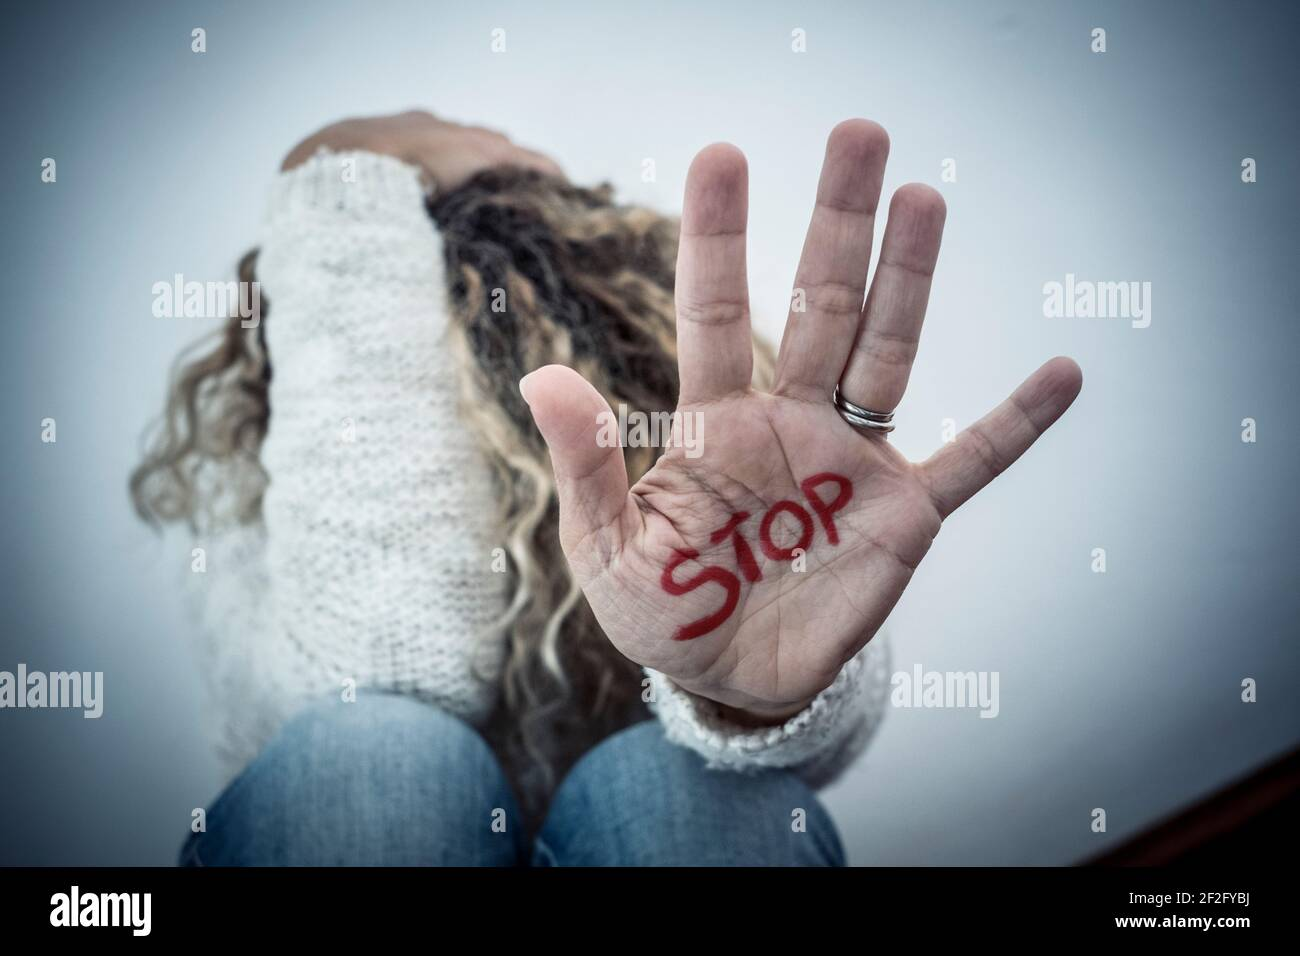 Stop crime violence abuse on women from men - woman protect herself sitting on the ground with hand to defense - home crime violence and couple abuese Stock Photo